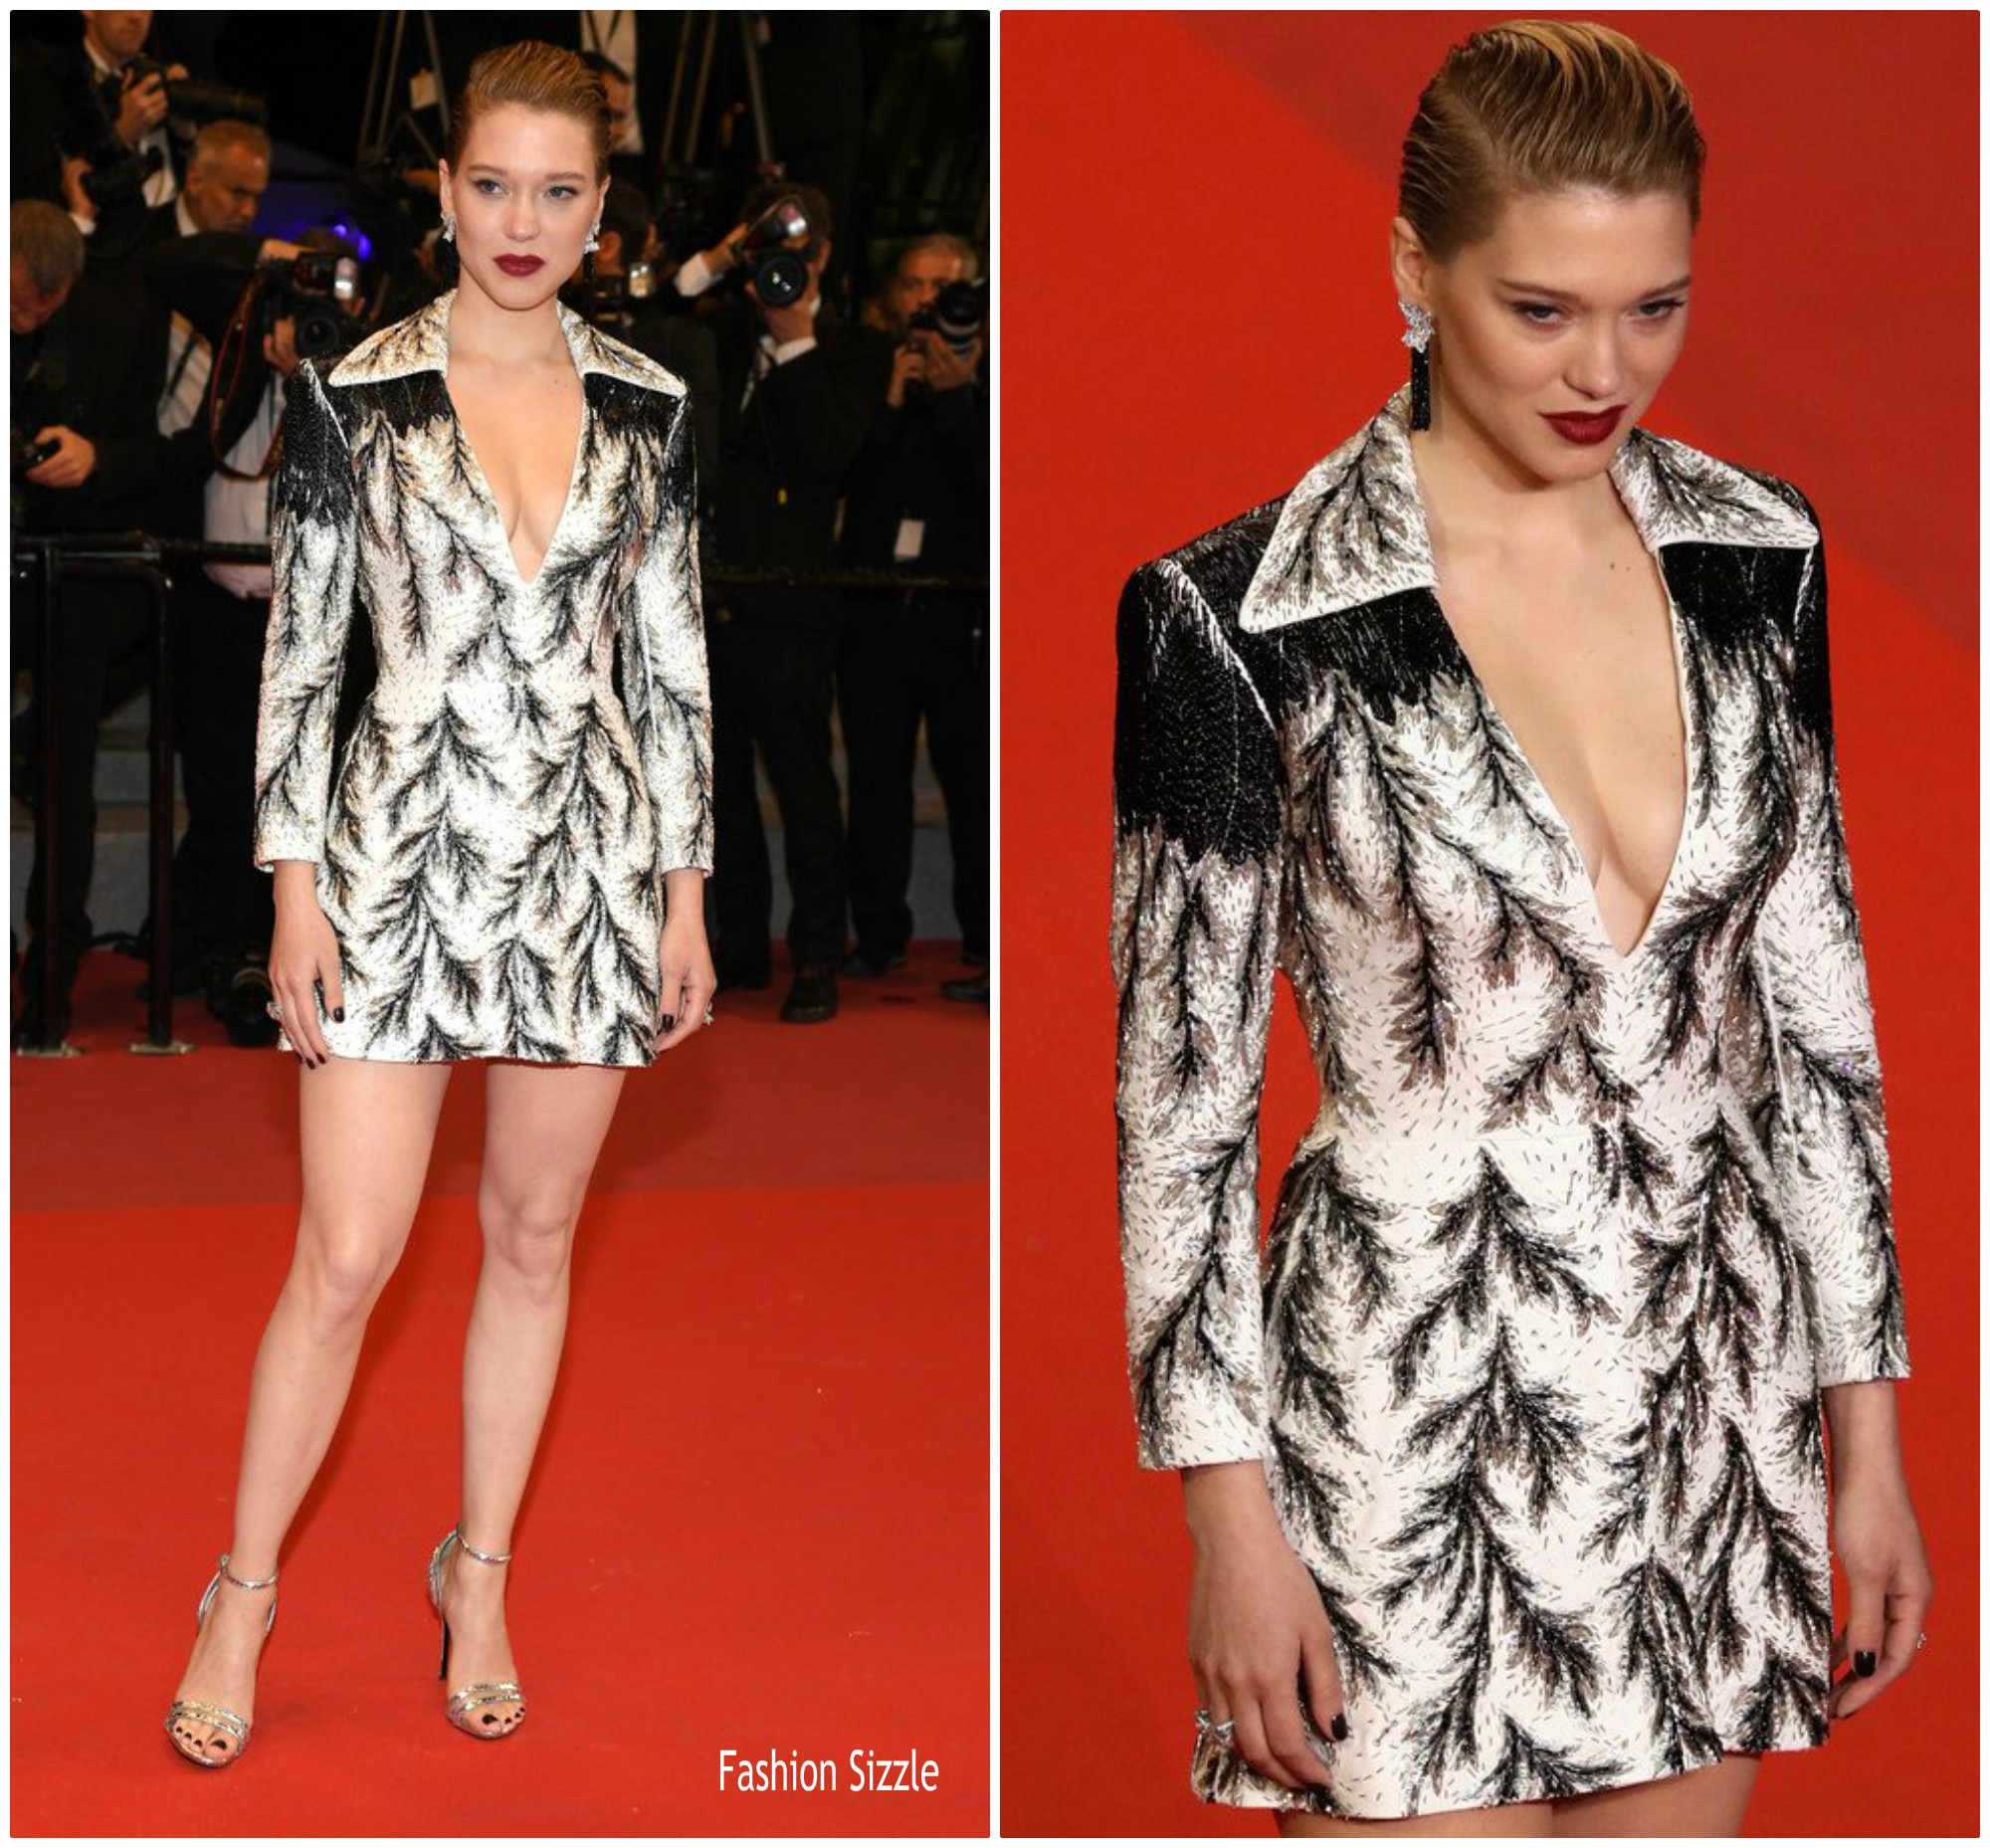 lea-seydoux-in-louis-vuitton-cold-war-zimna-wojna-cannes-film-festival-premiere